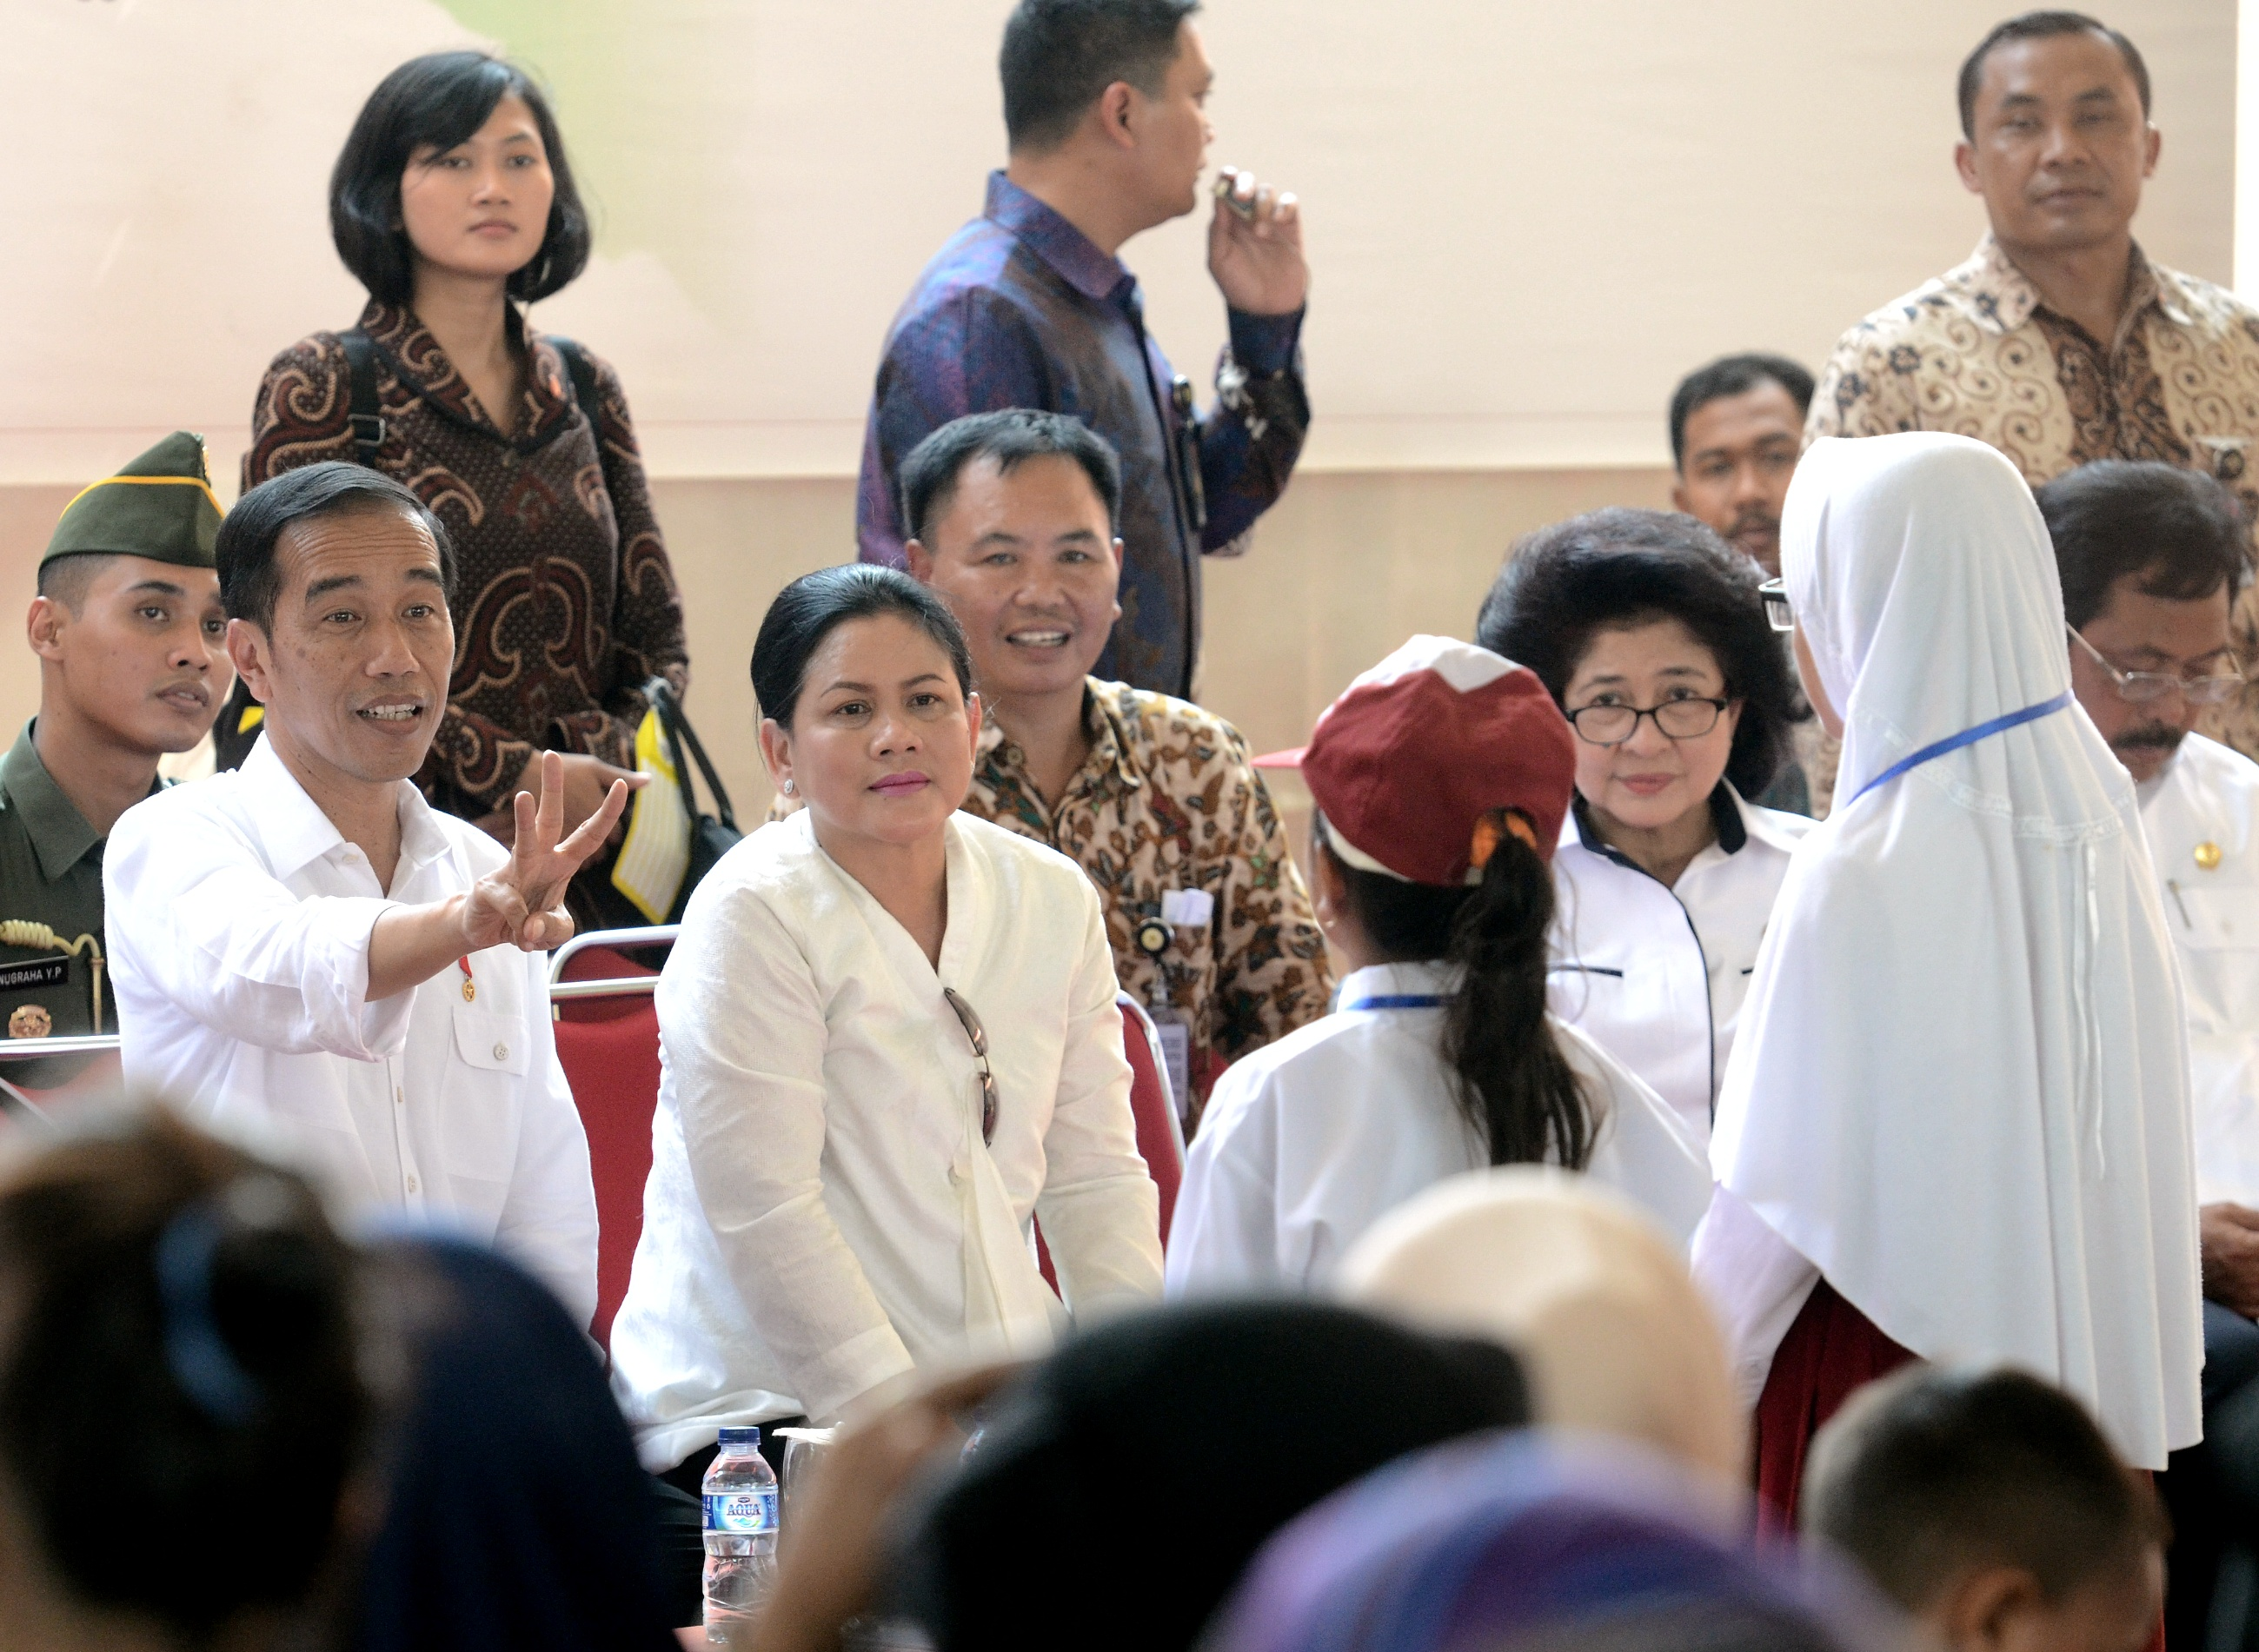 President Jokowi, accompanied by First Lady Ibu Iriana Jokowi, has a dialogue with recipients of KIP at Batam, Riau Islands, Thursday (23/3) afternoon. (Photo: PR/Agung)